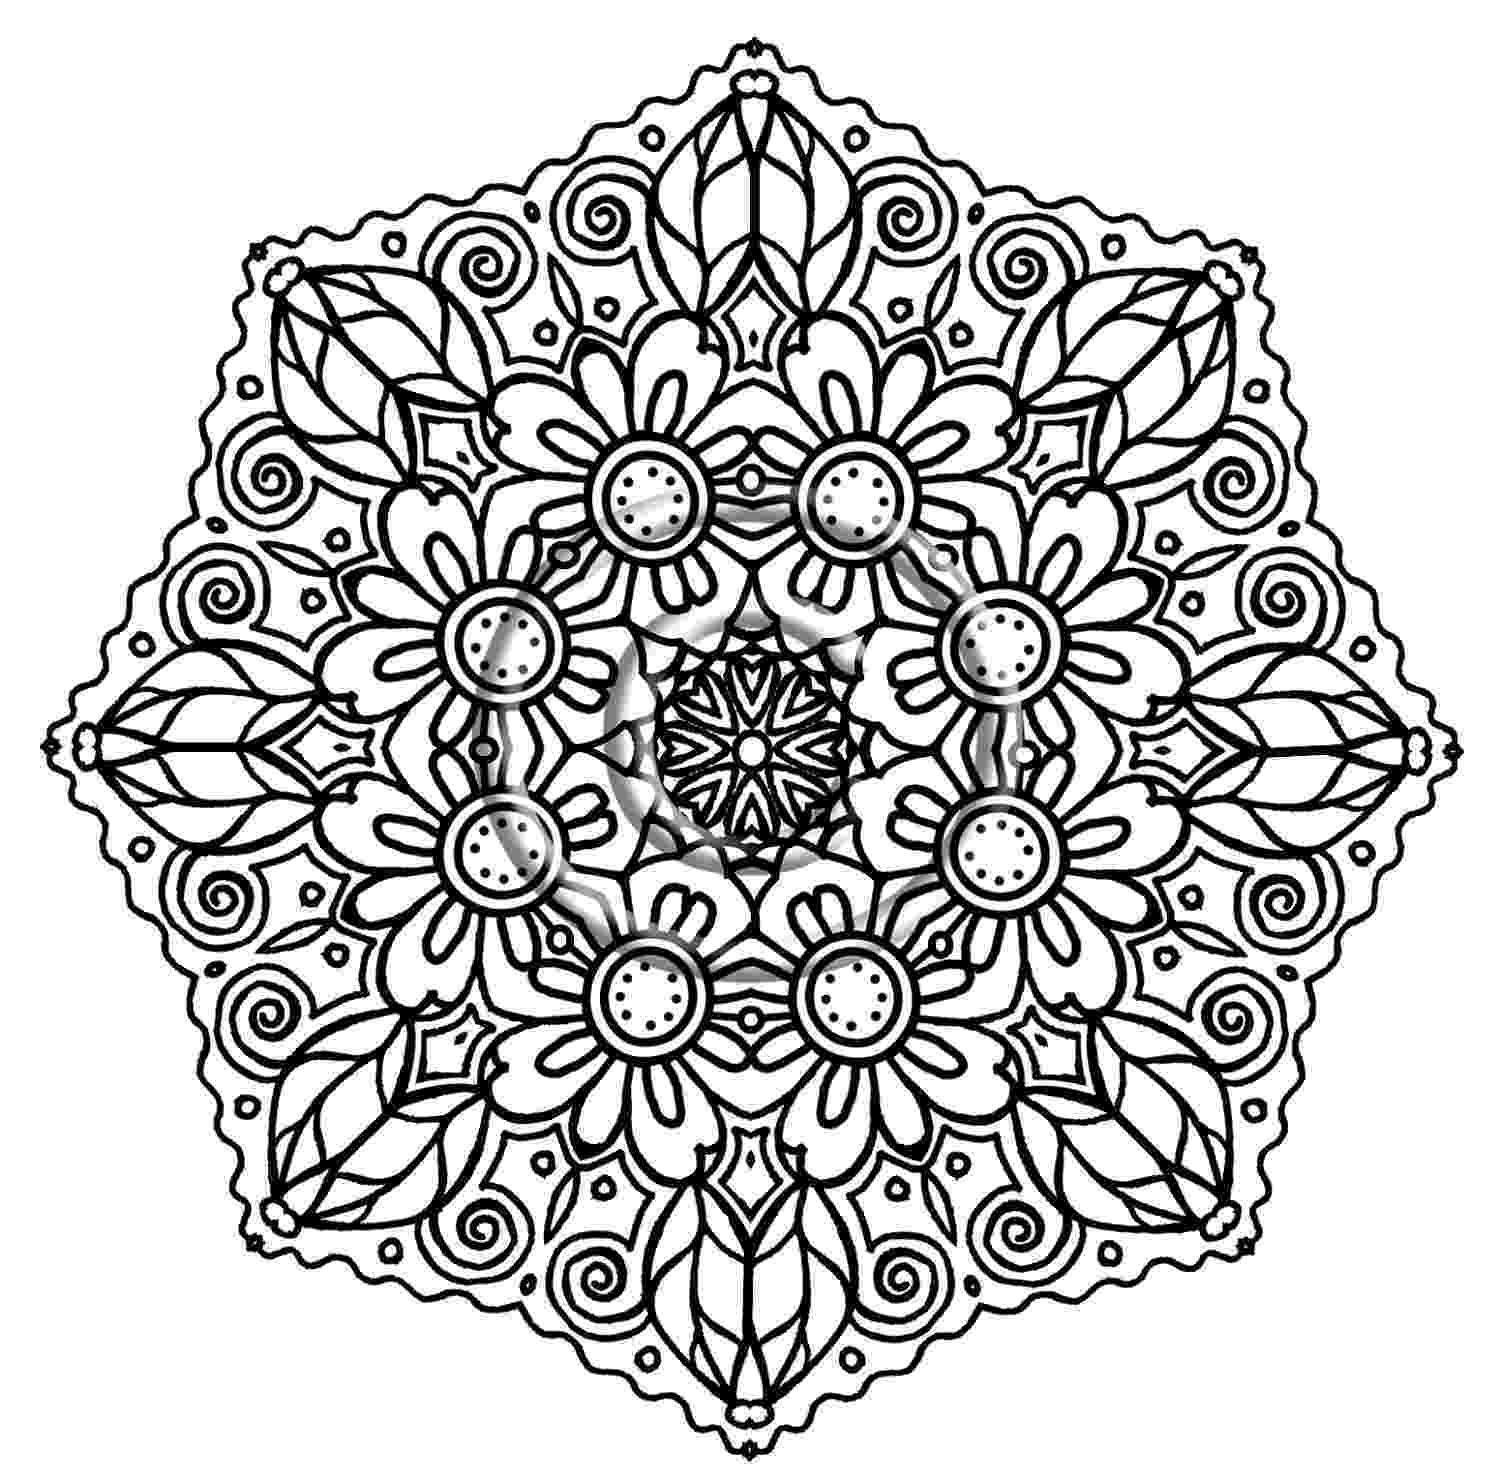 adult flower coloring pages 11 coloring pages for adults jpg psd vector eps pages flower coloring adult